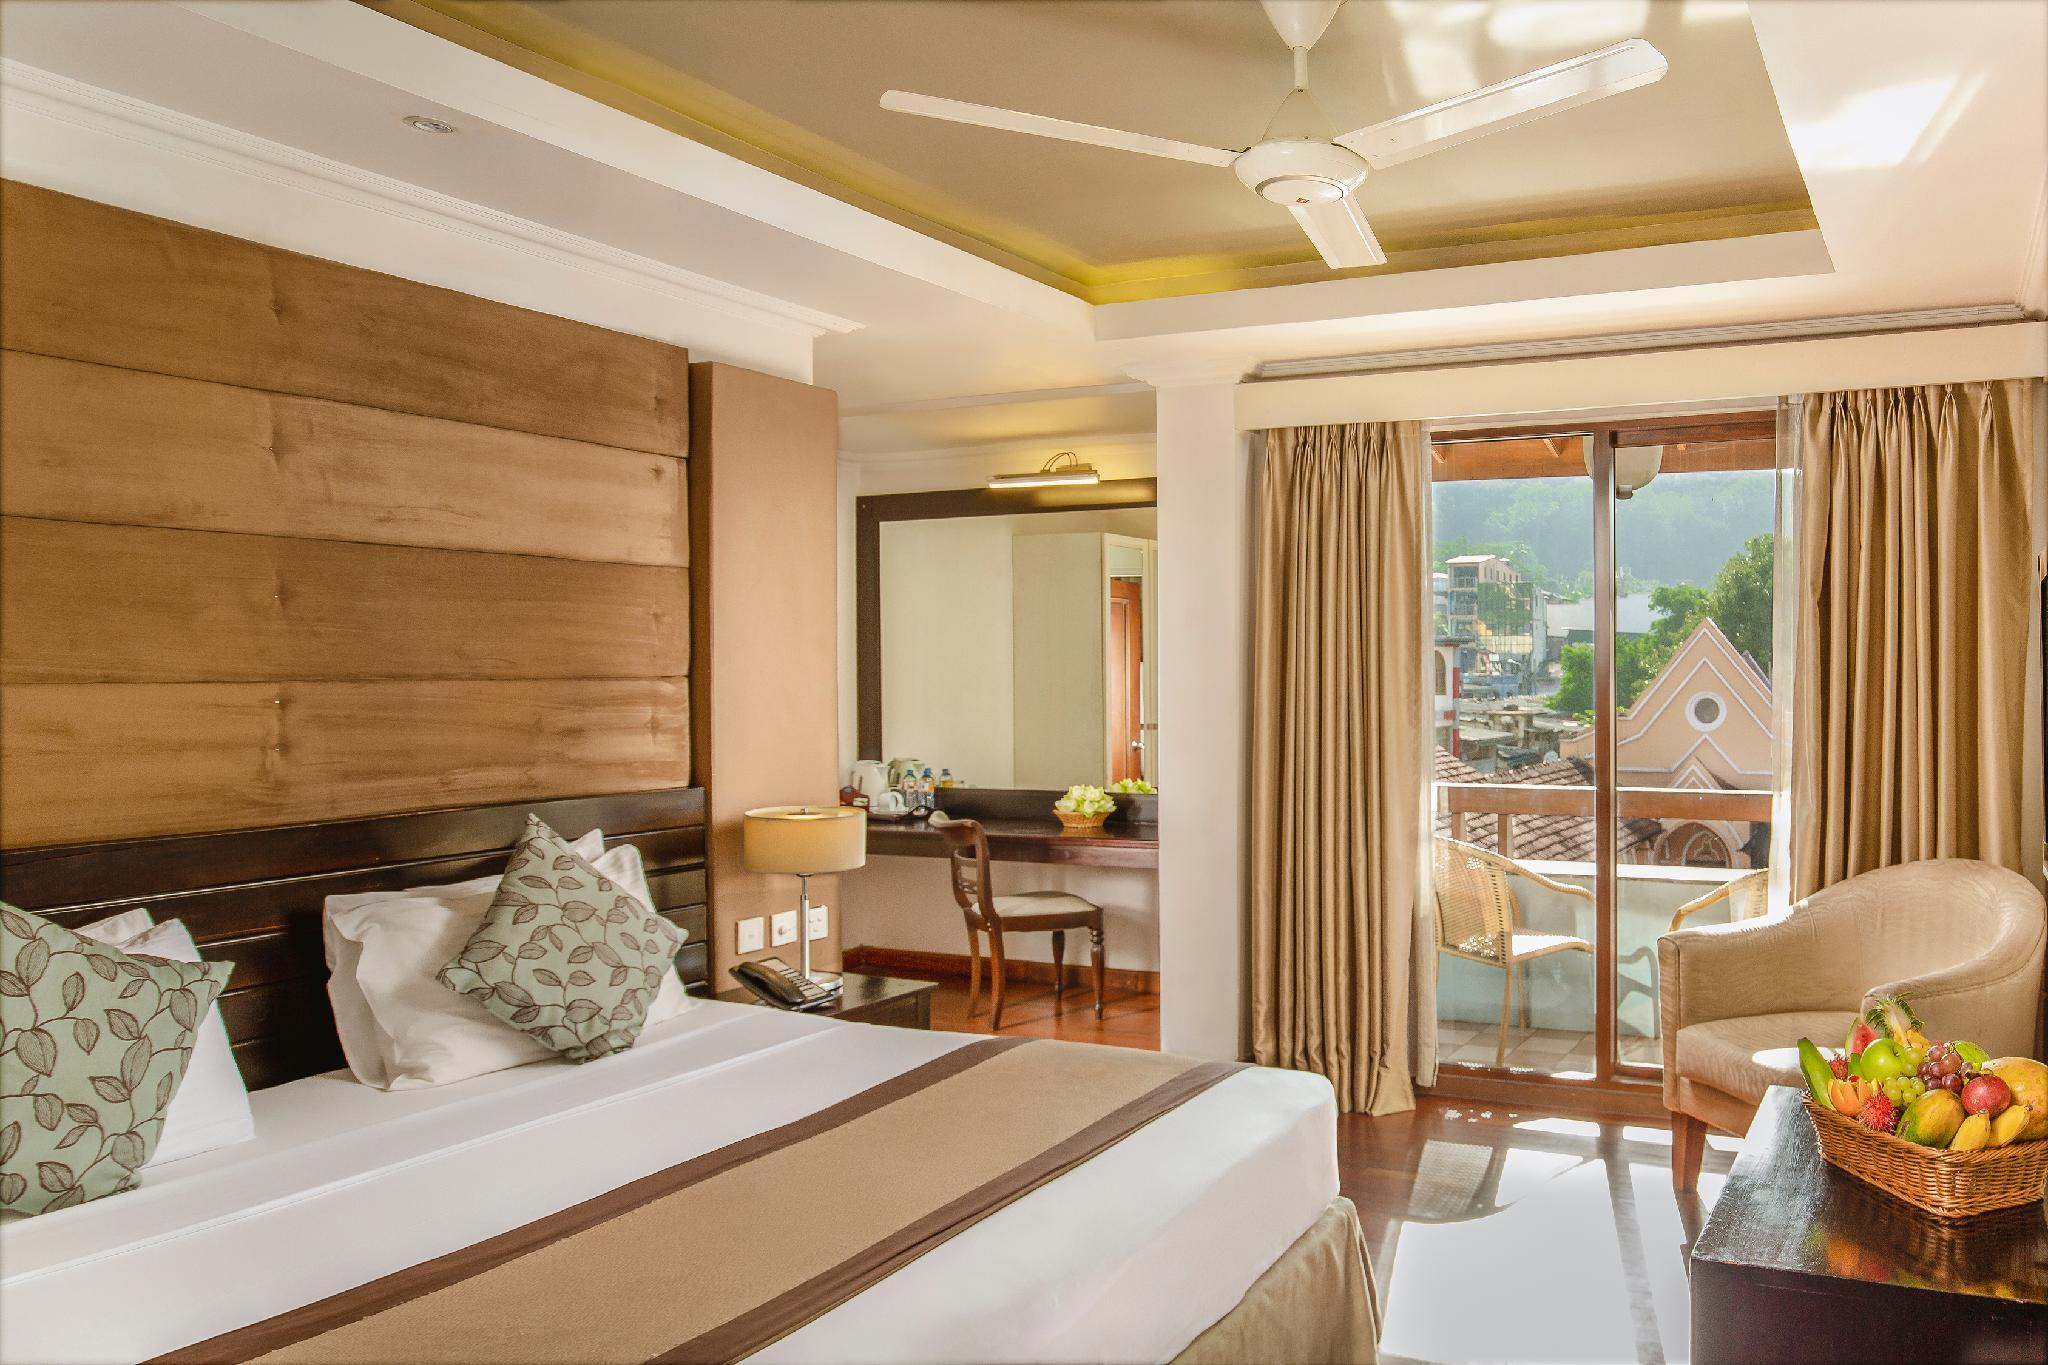 Kandy City Hotel By Earl's